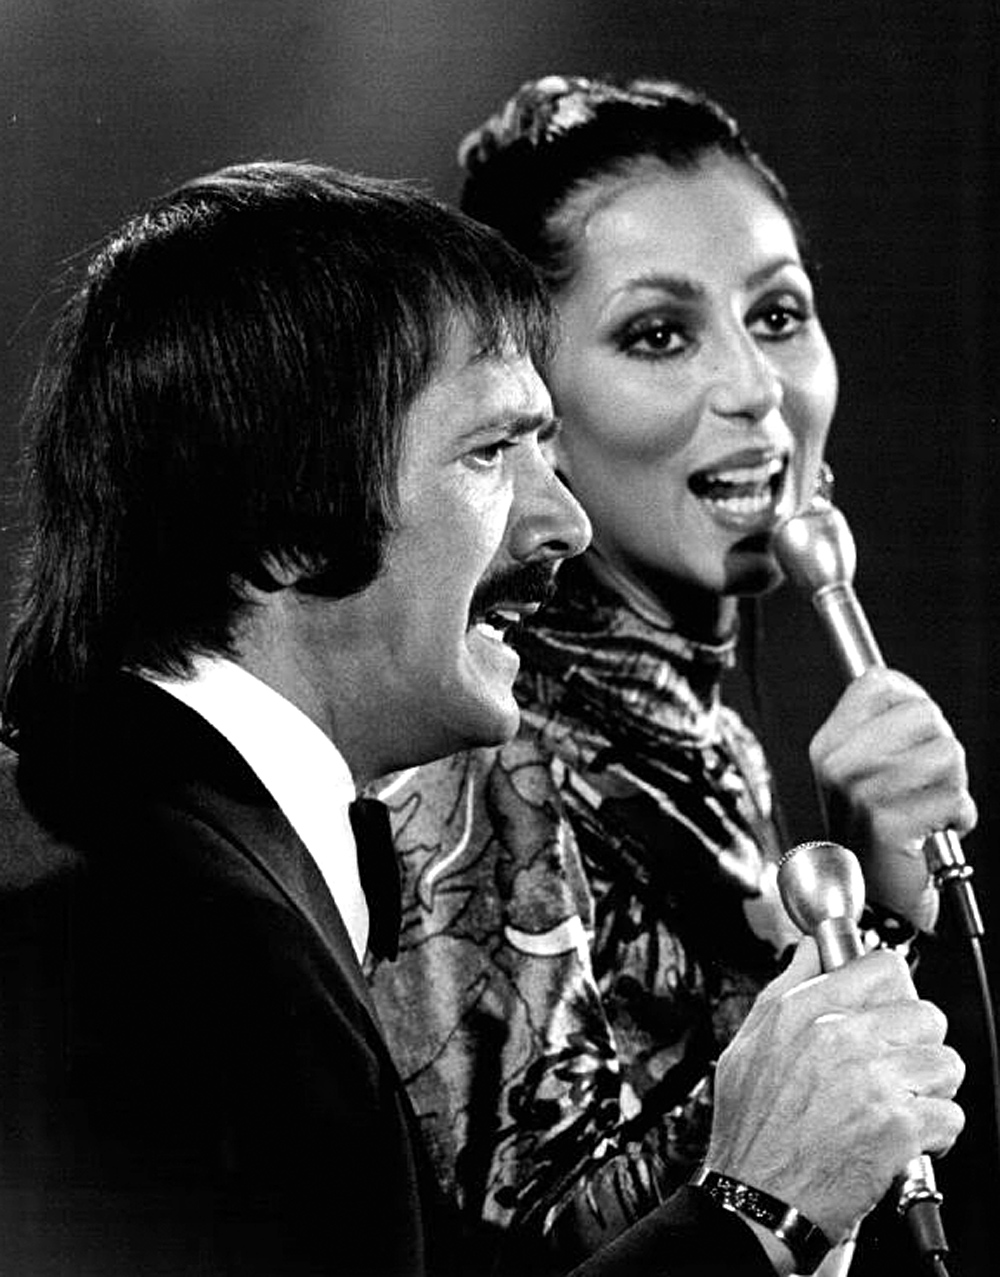 Sonny_and_Cher_Show_-_1976